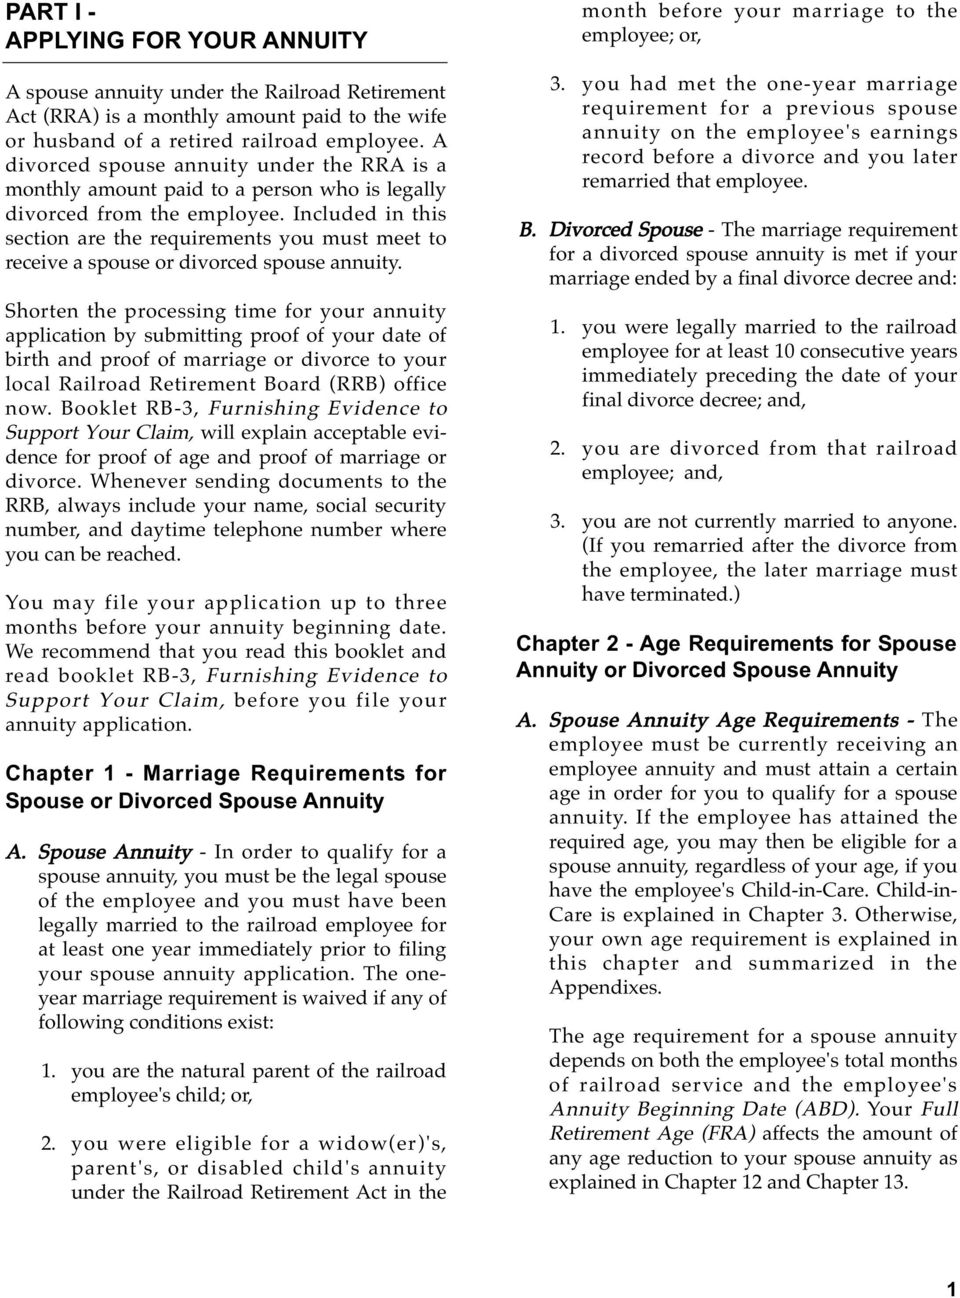 Included in this section are the requirements you must meet to receive a spouse or divorced spouse annuity.